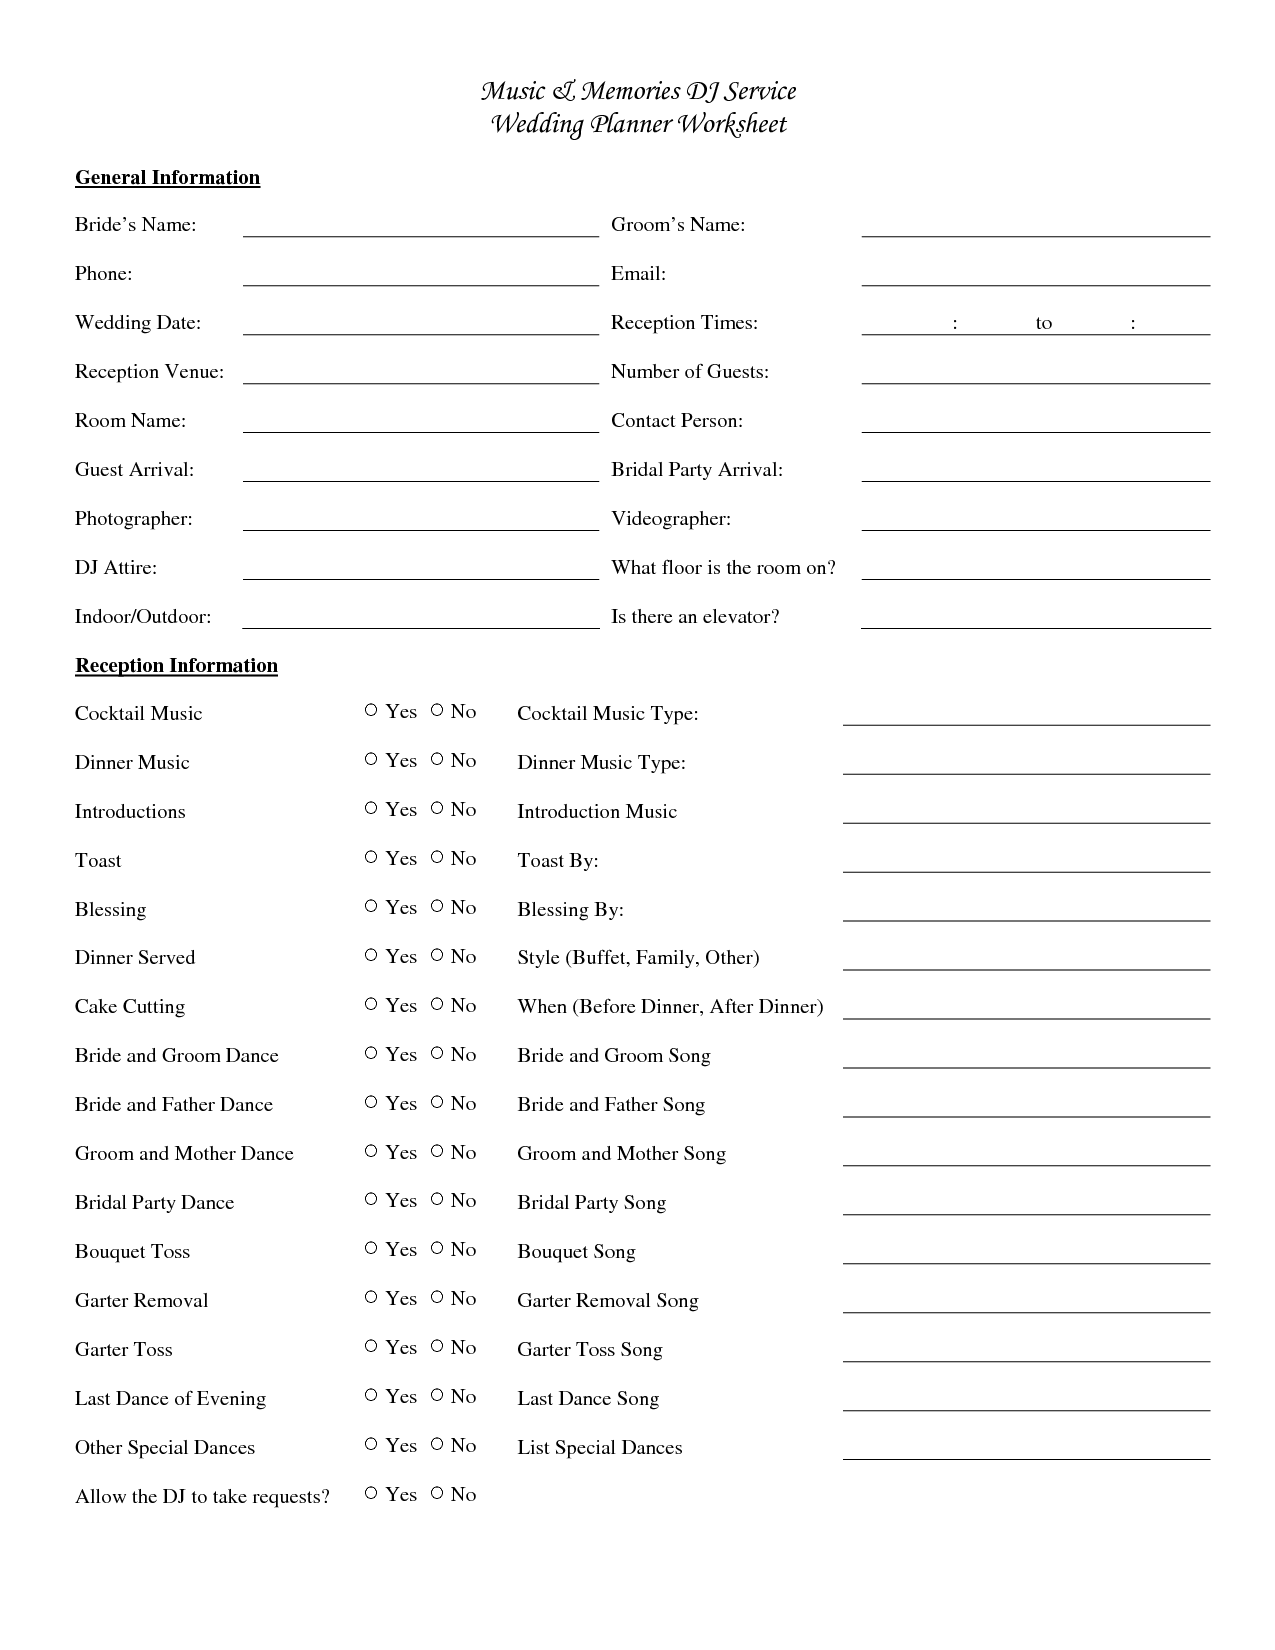 Worksheets Wedding Planning Worksheets wedding dj checklist music memories service planner worksheet yes no yes